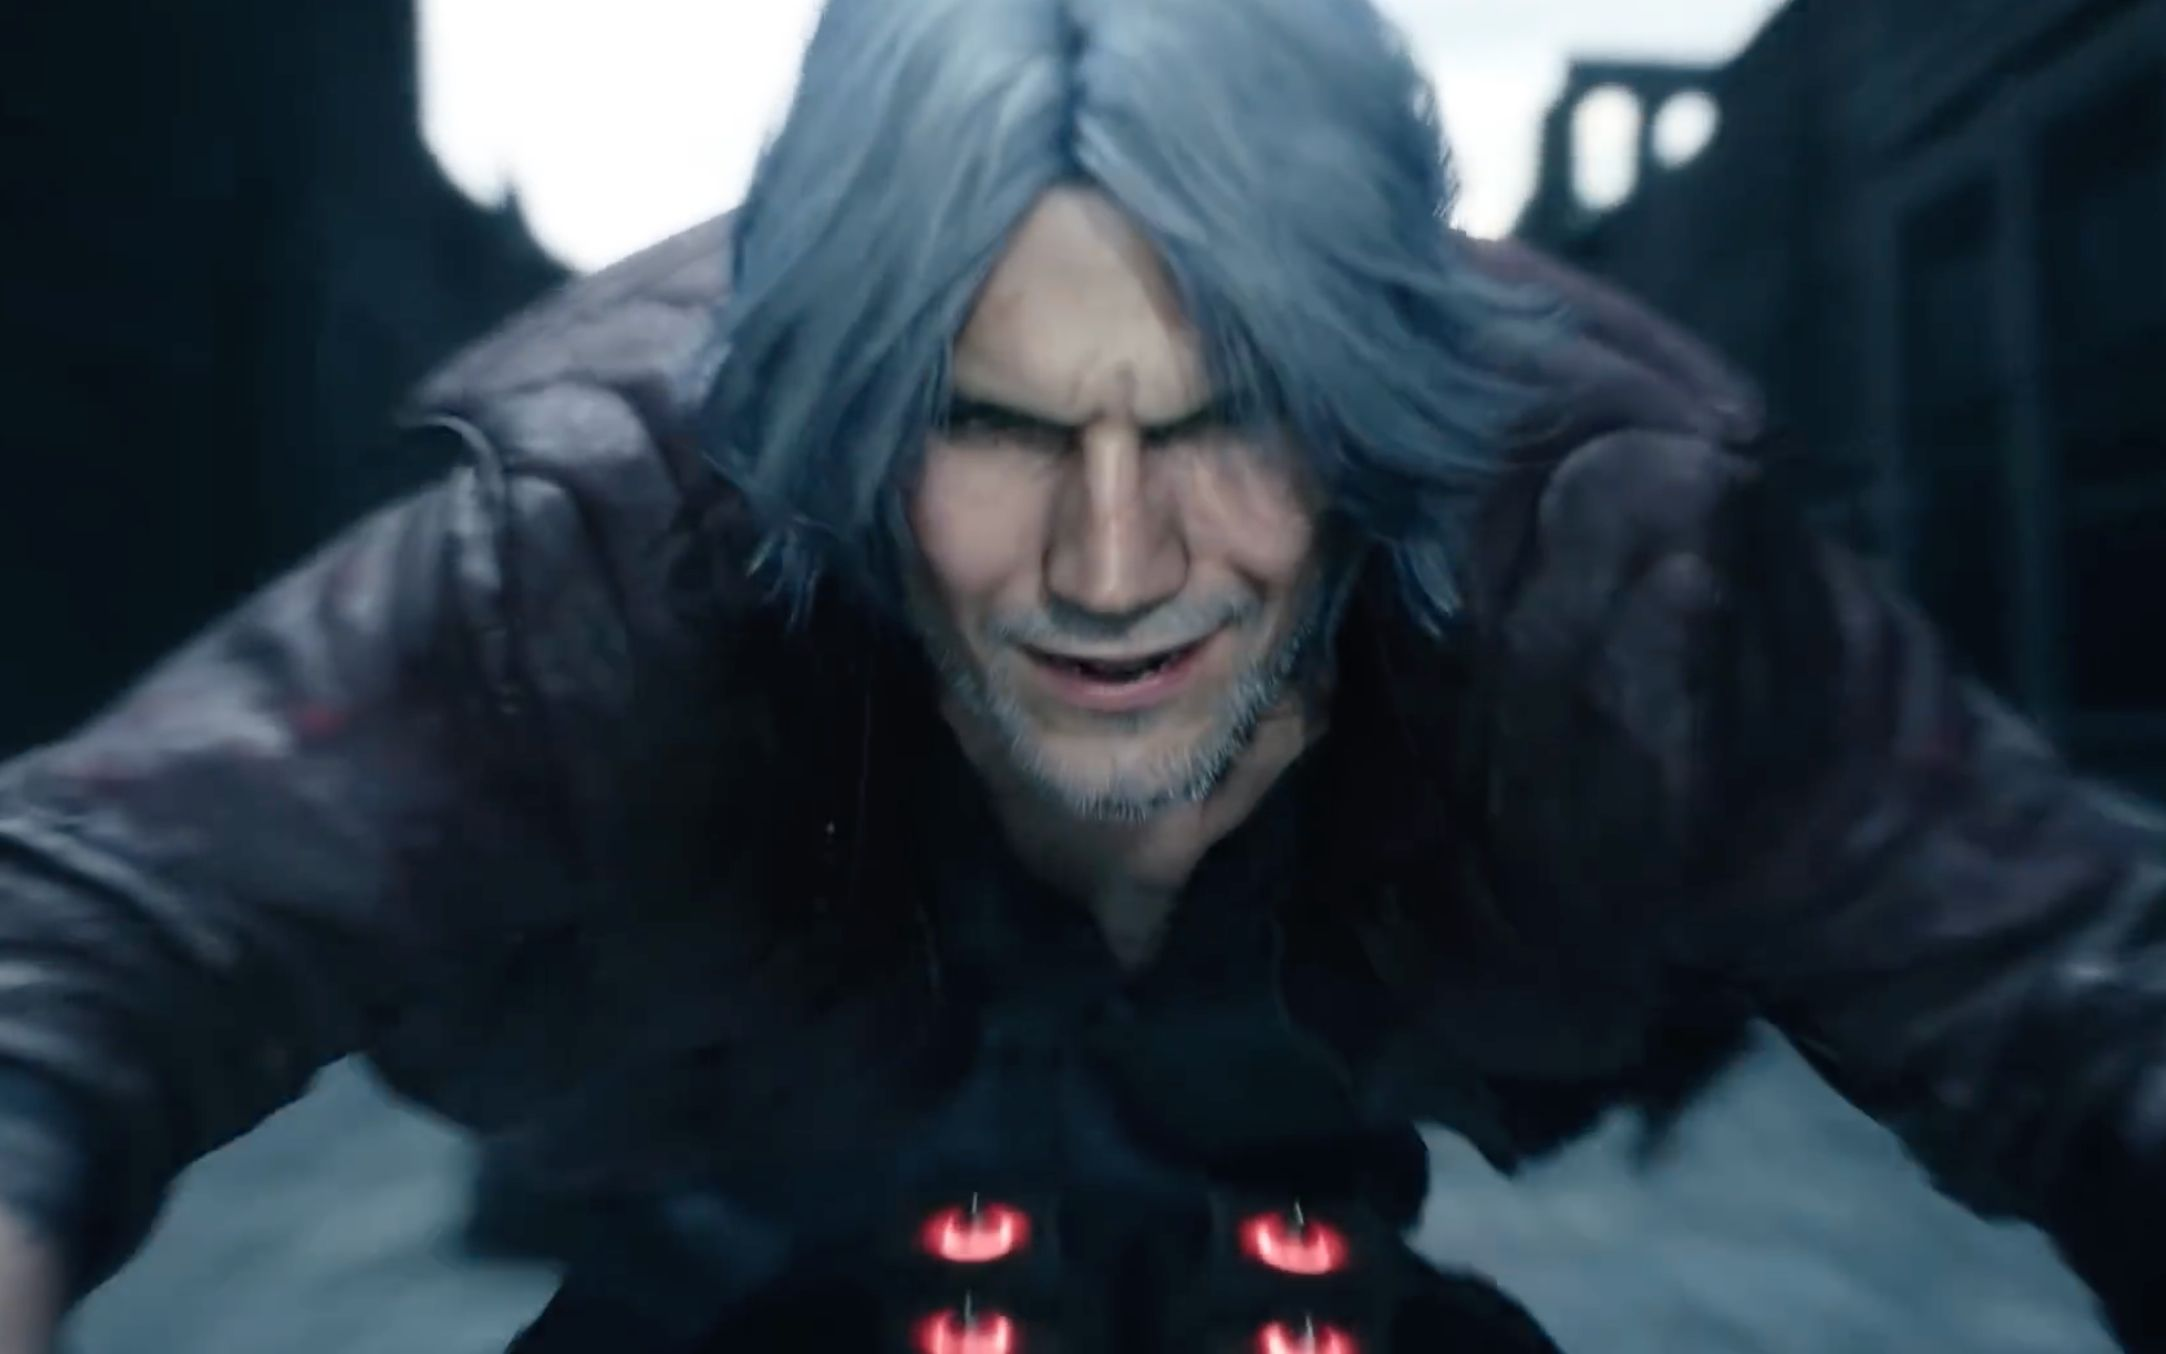 Devil may cry 5 - 5 5